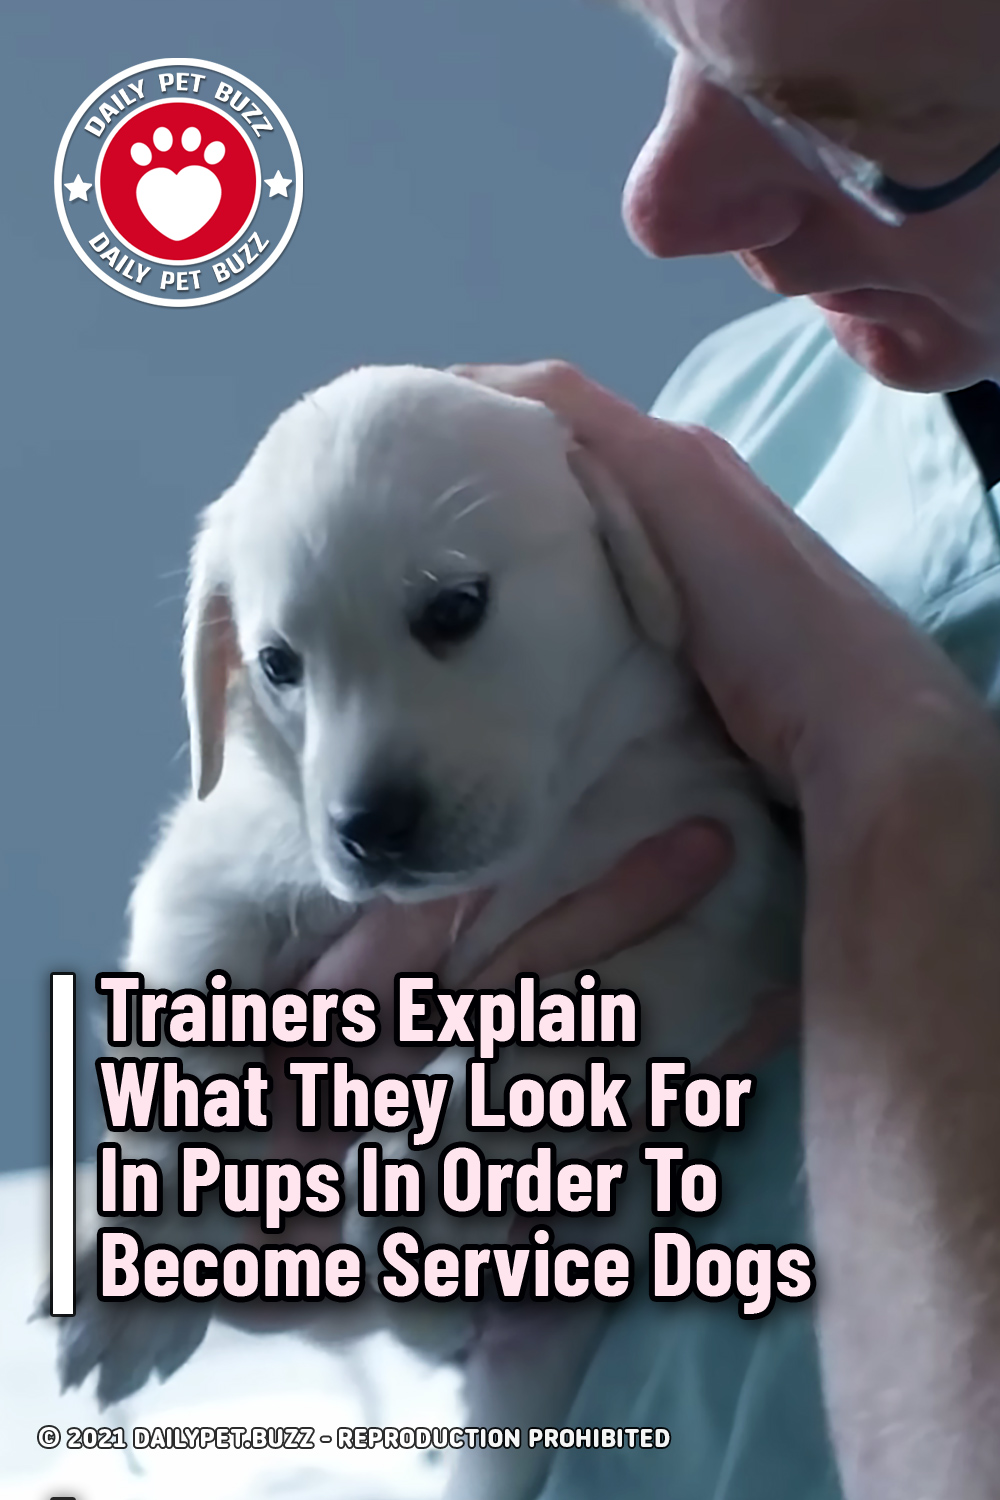 Trainers Explain What They Look For In Pups In Order To Become Service Dogs